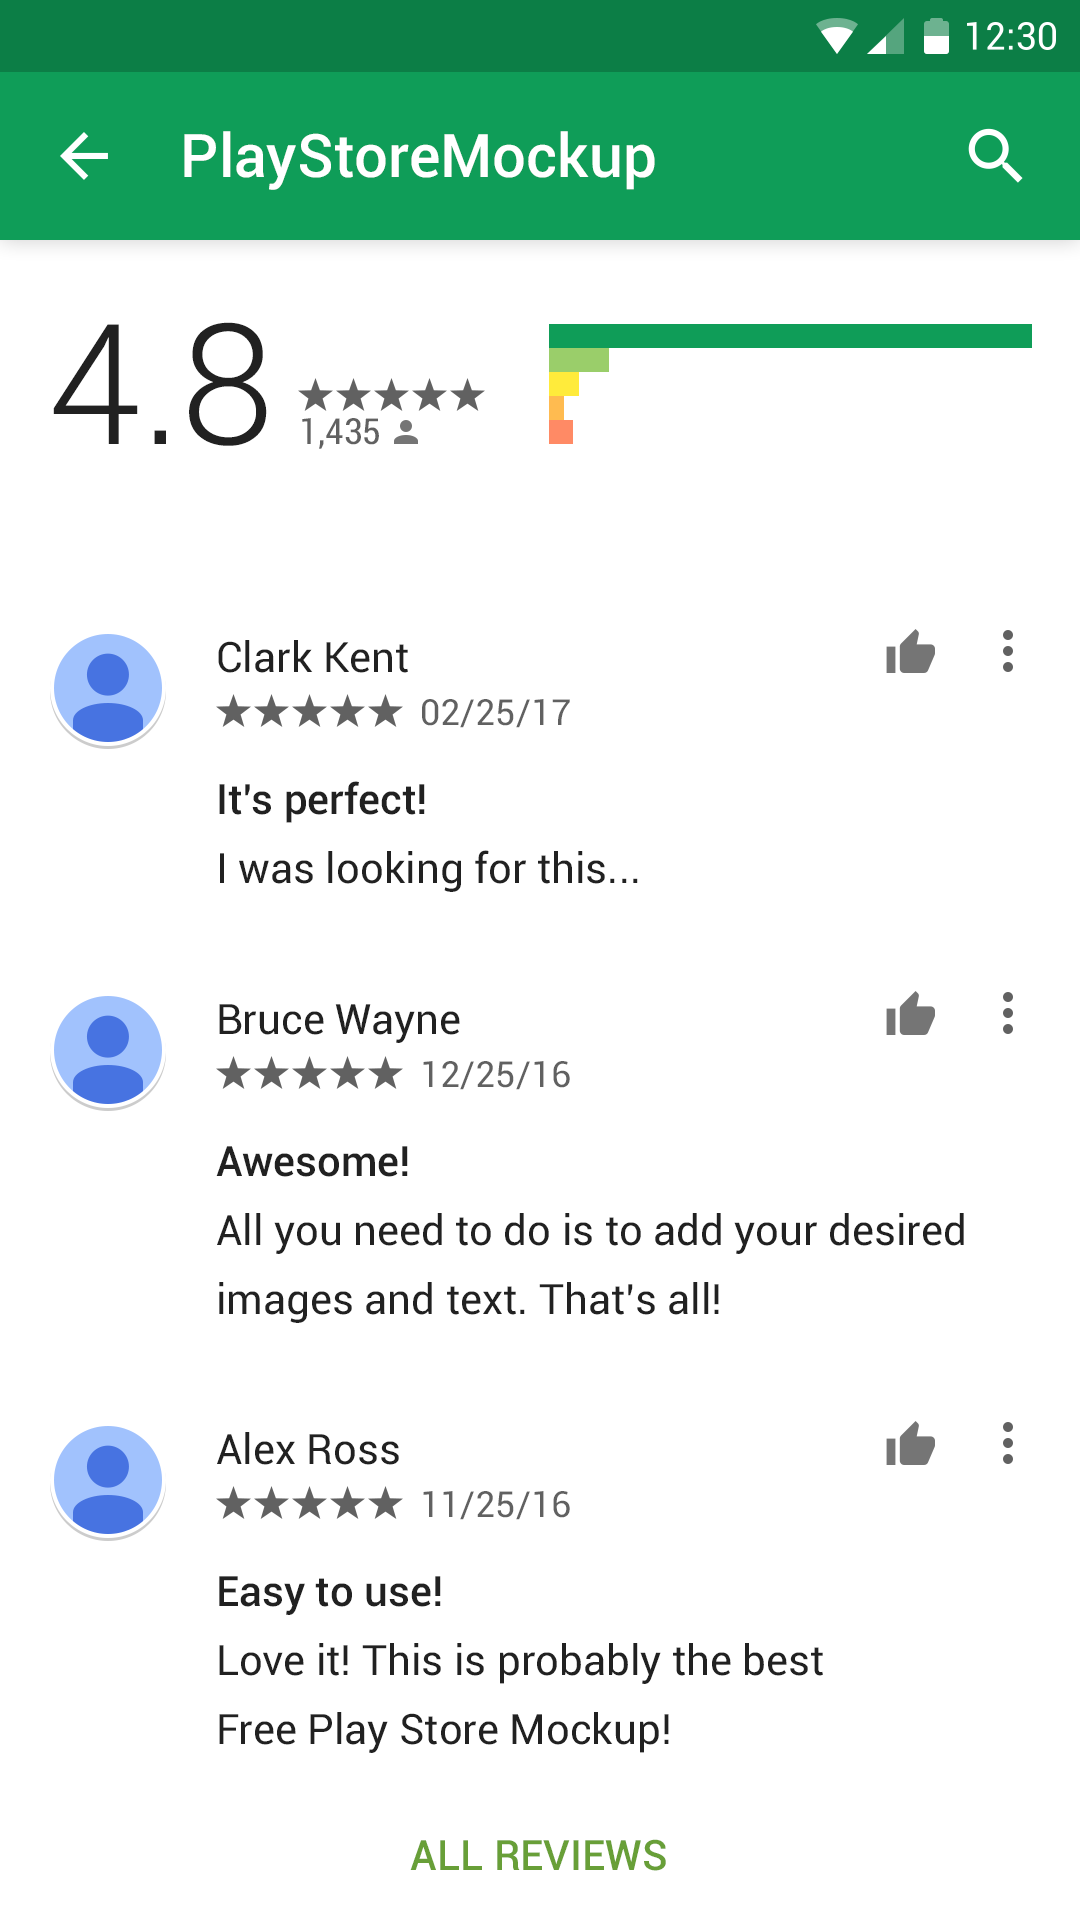 Play Store Mockup Rating